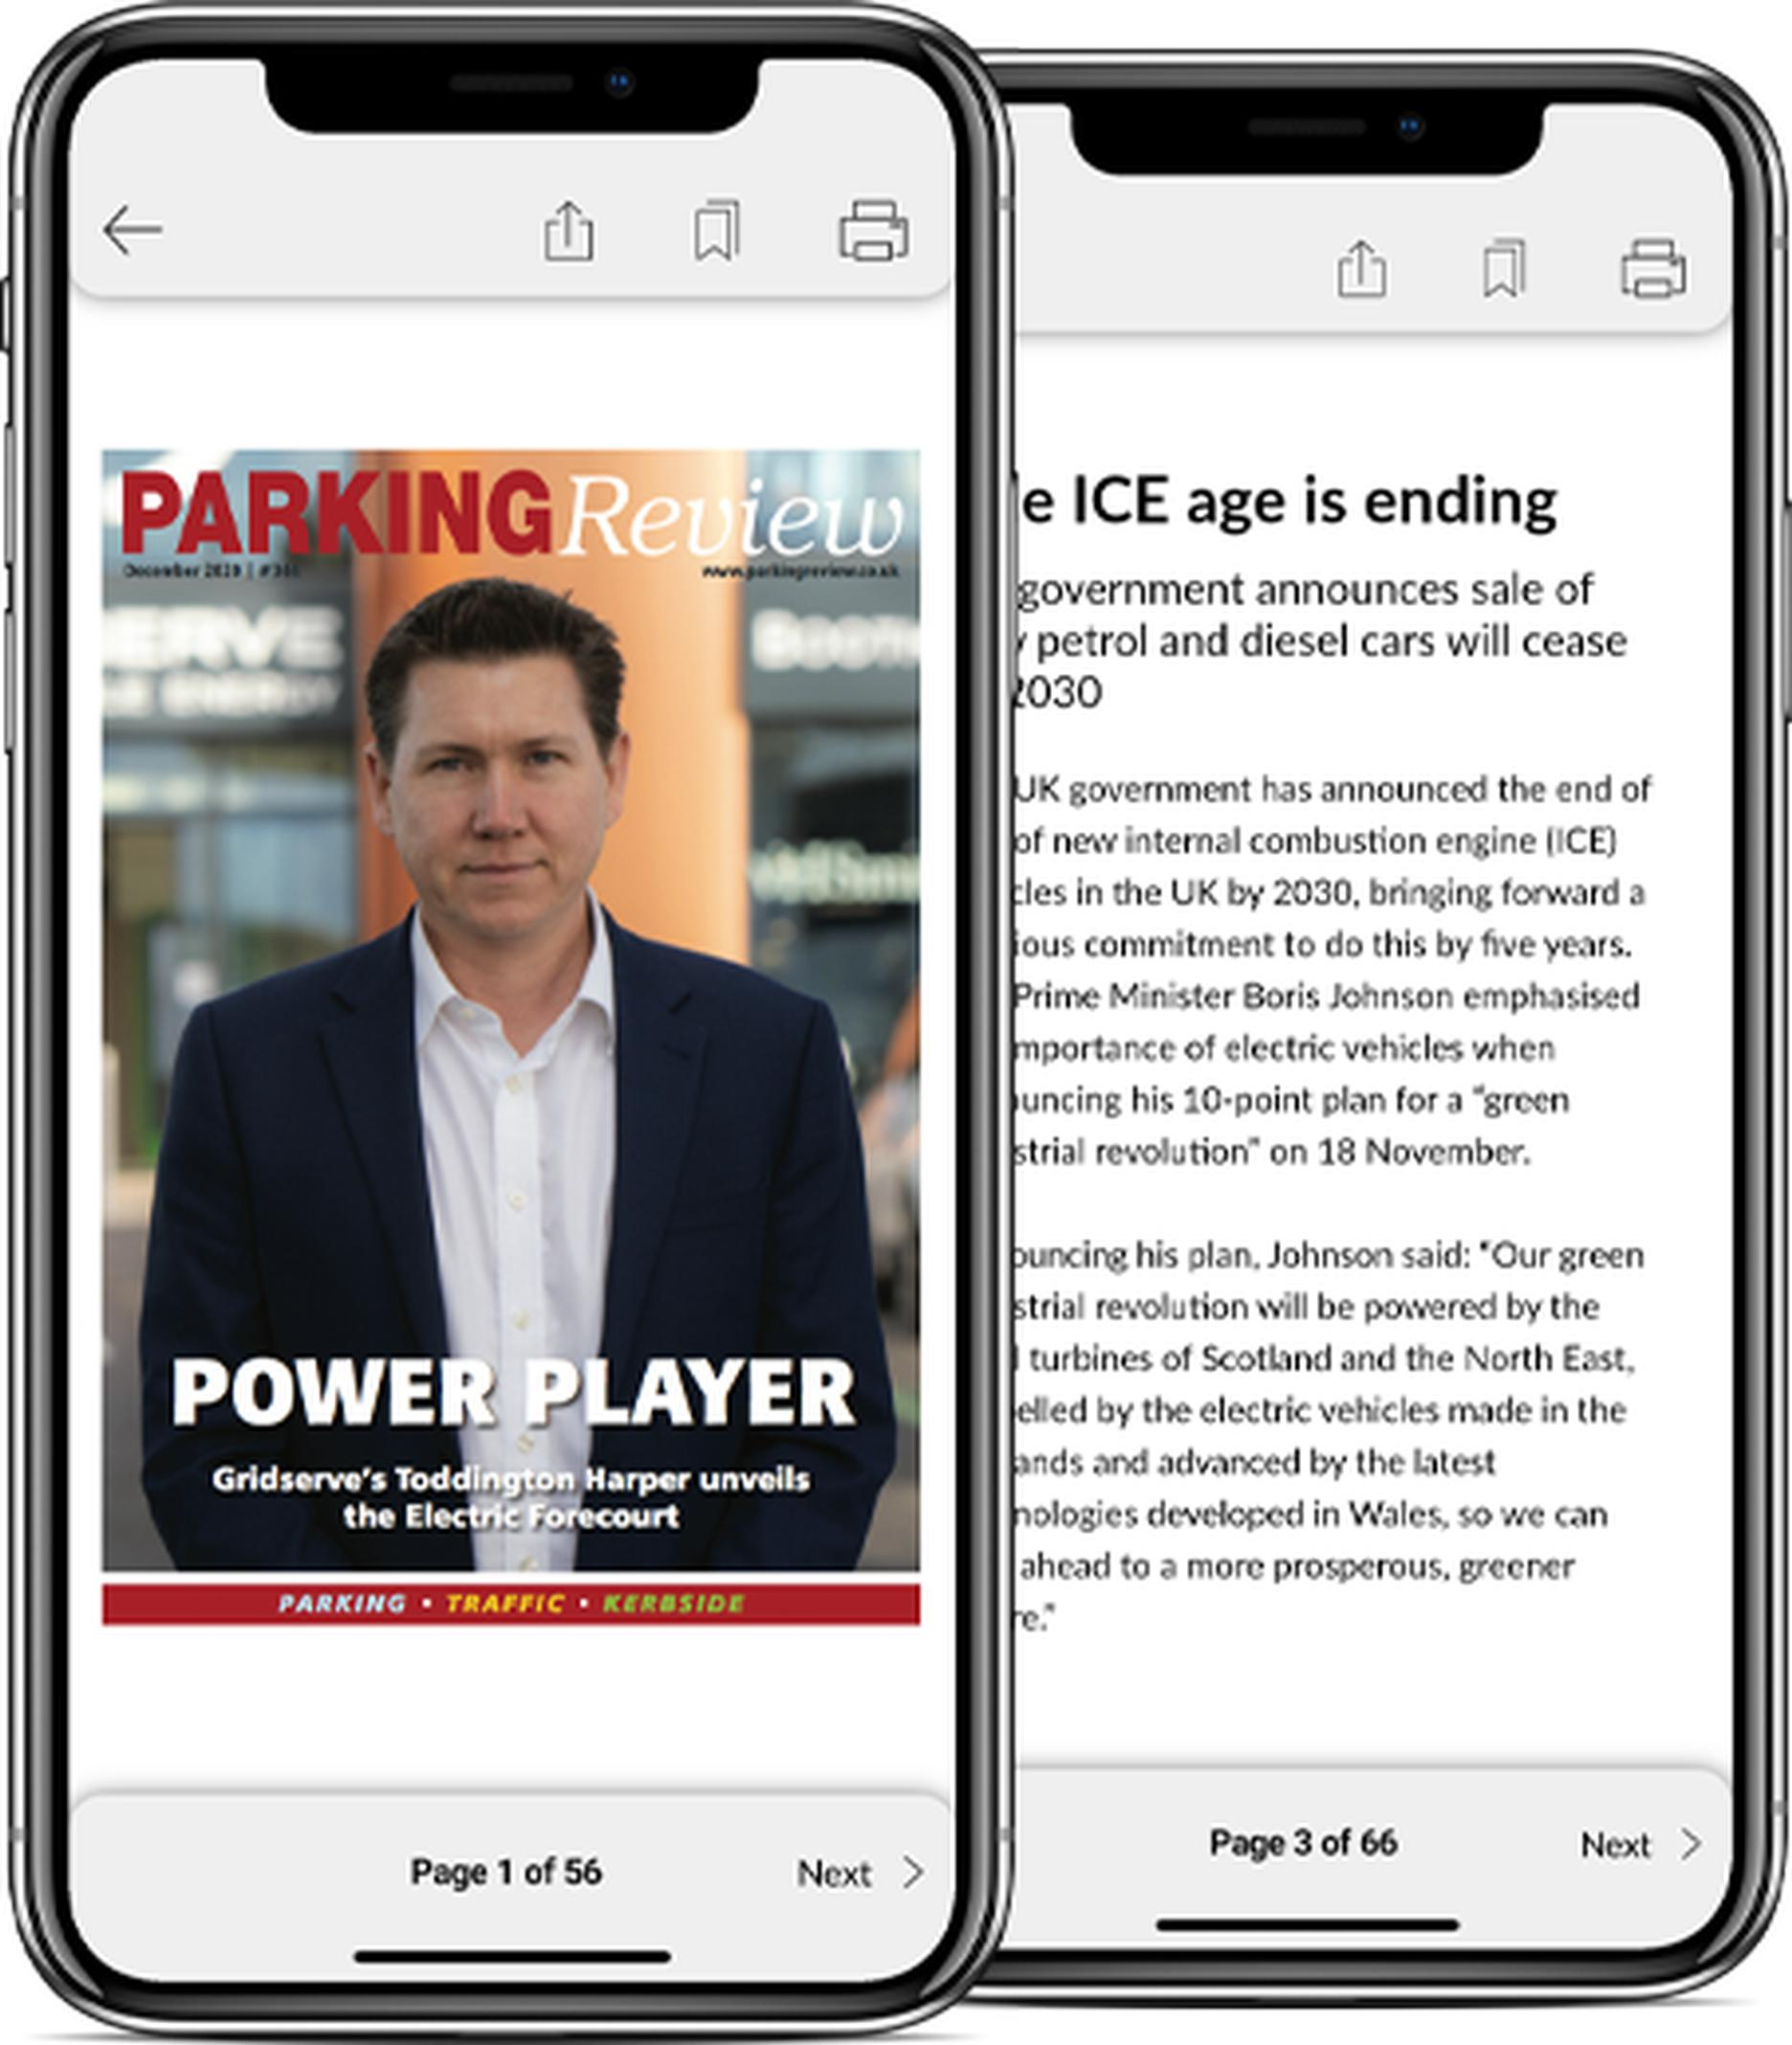 The Parking Review Editions app